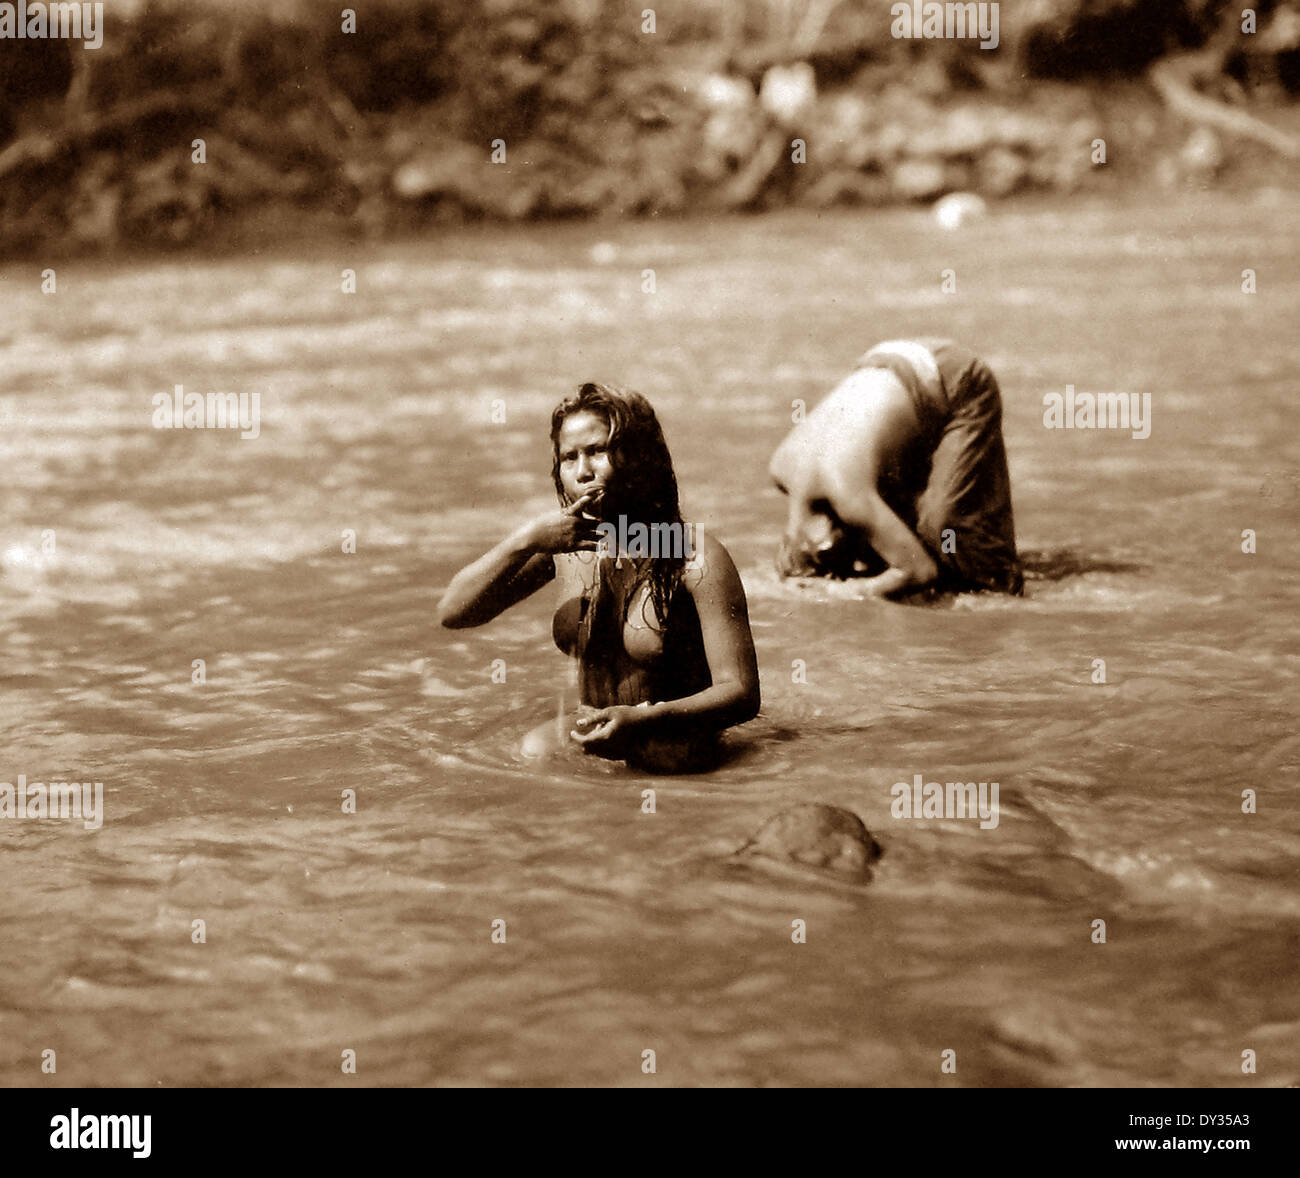 Bali women bathing in the 1920s stock photo royalty free for Bathing images